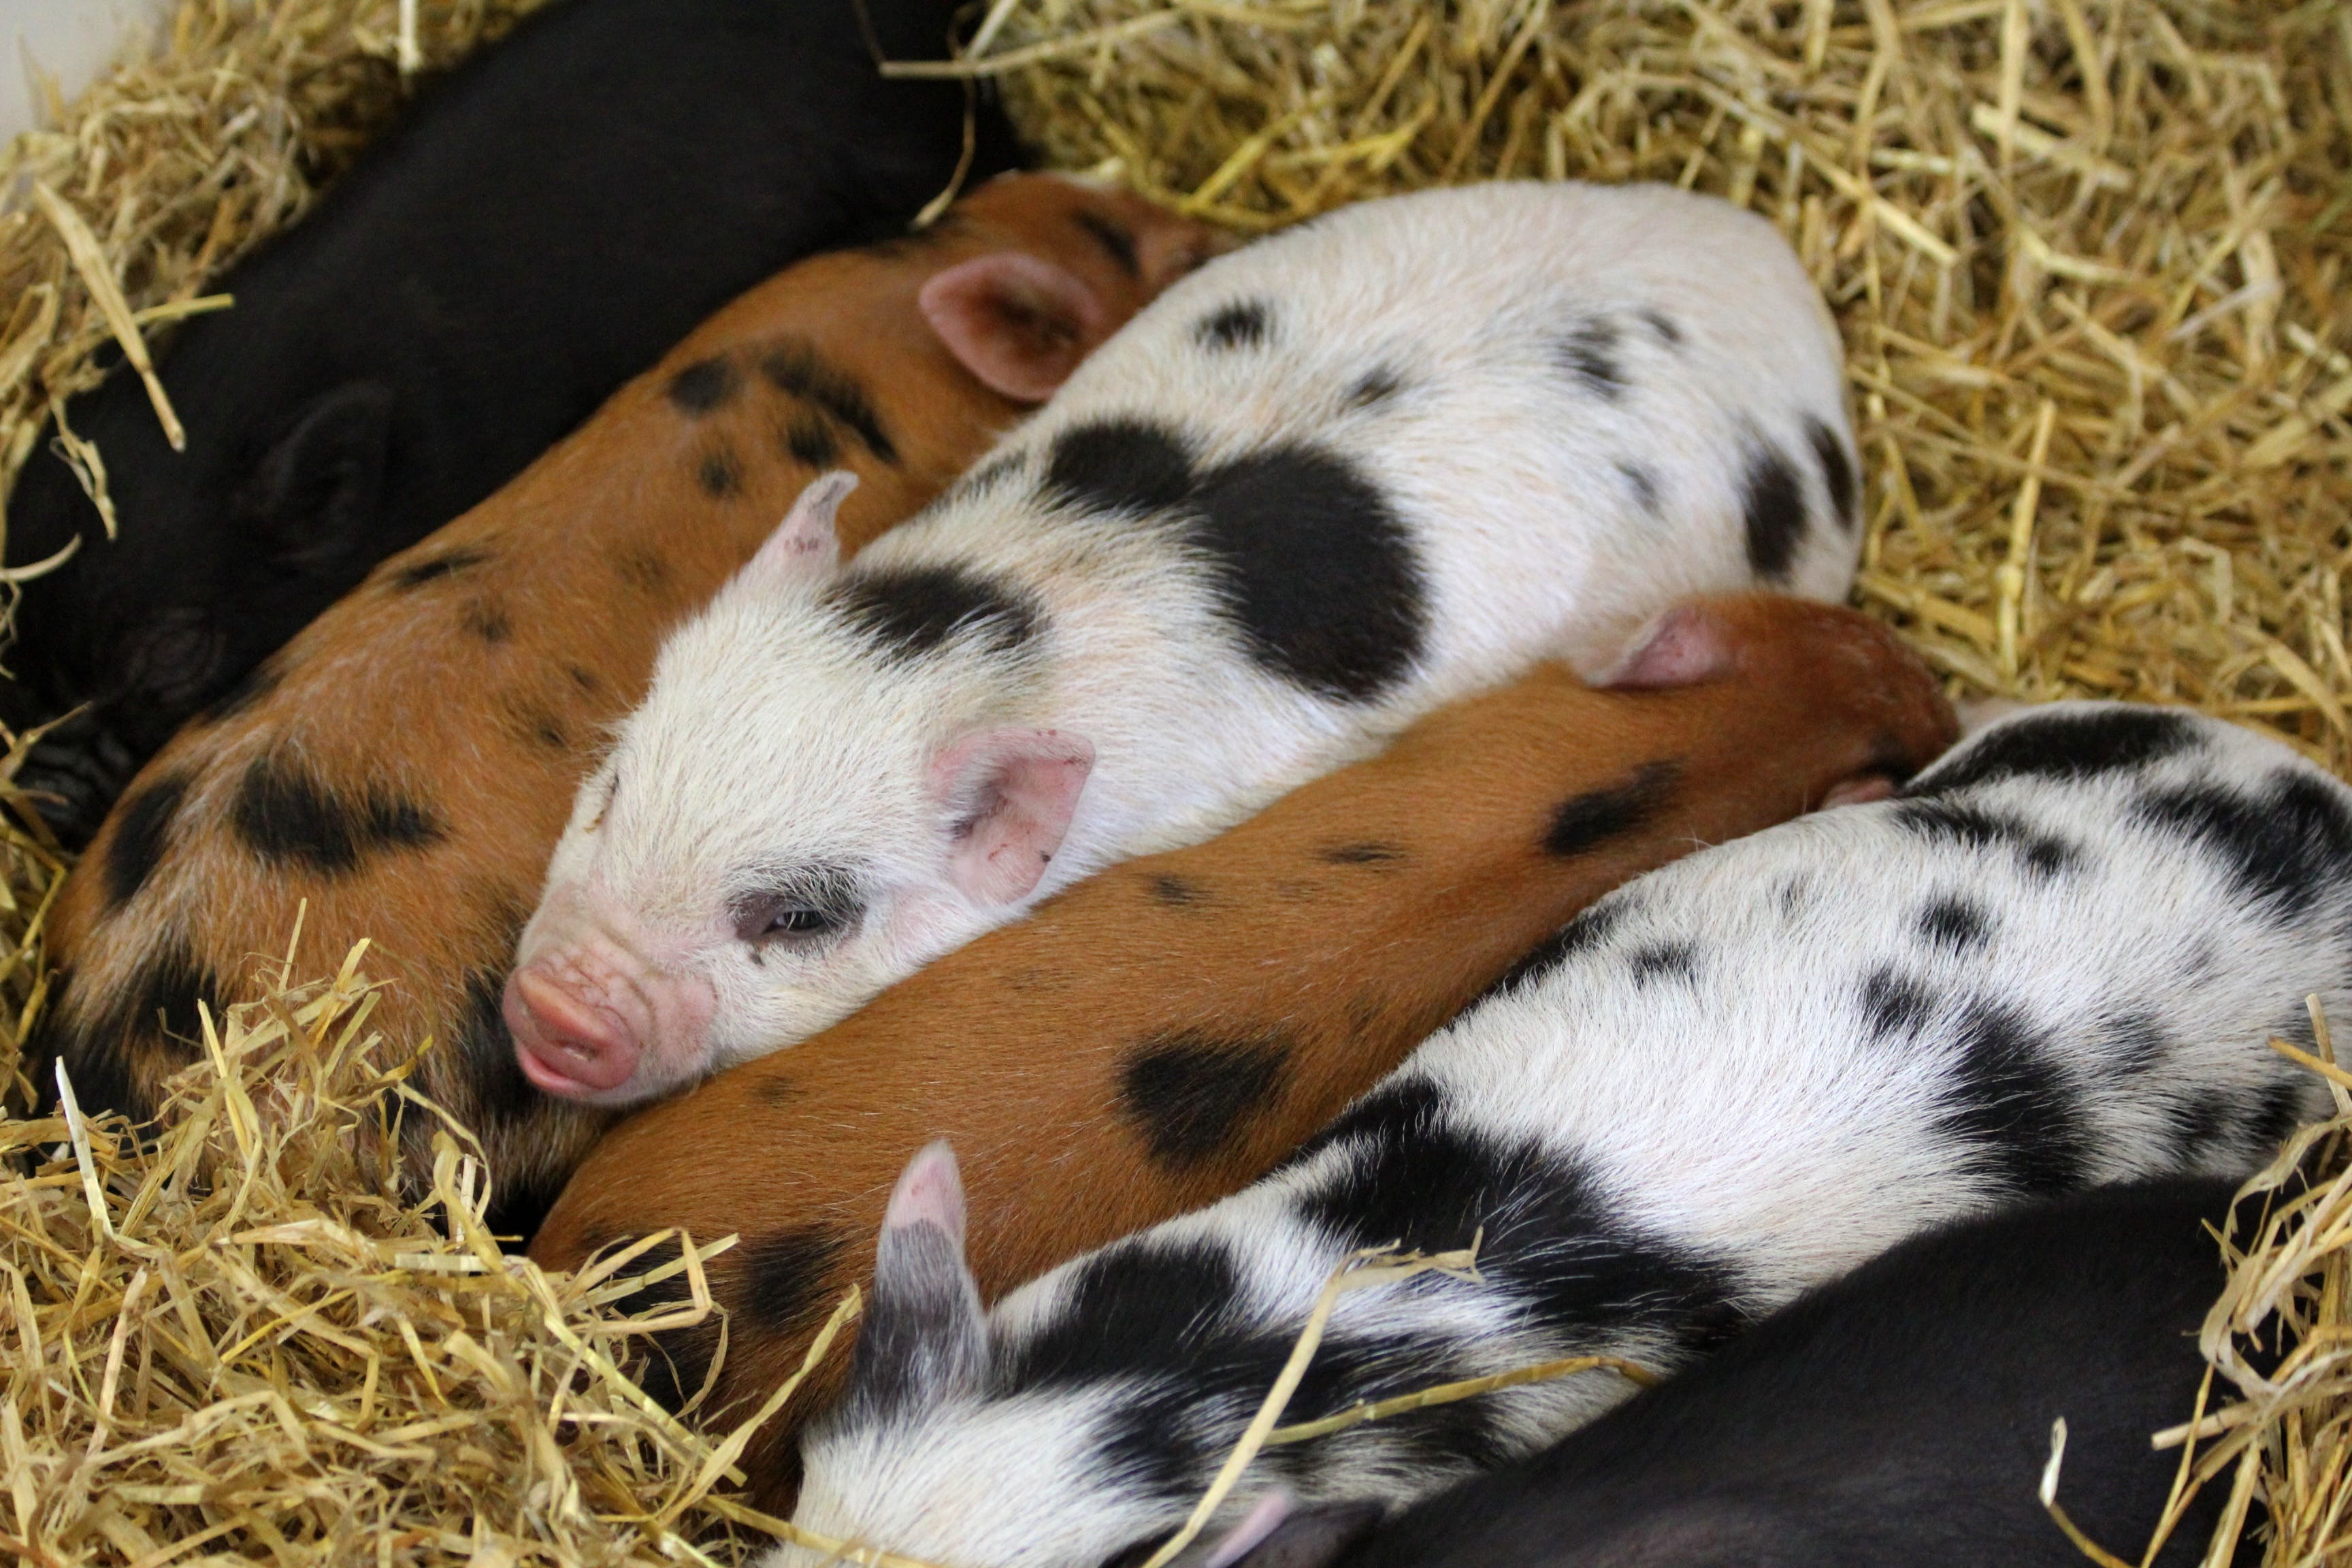 Group of Piglets